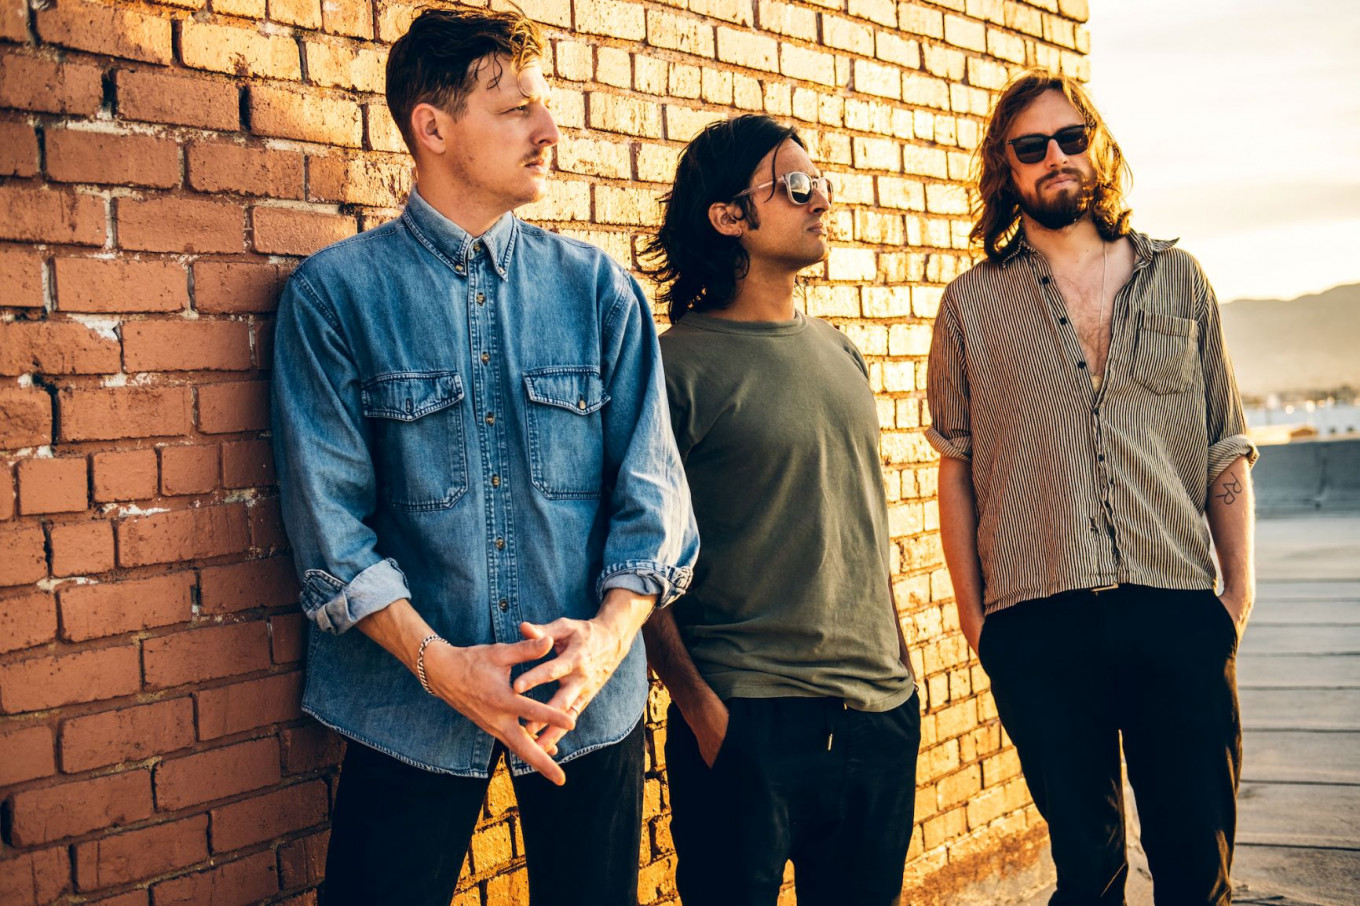 Experimental rock band Yeasayer produces catchy pop in 'Erotic Reruns'